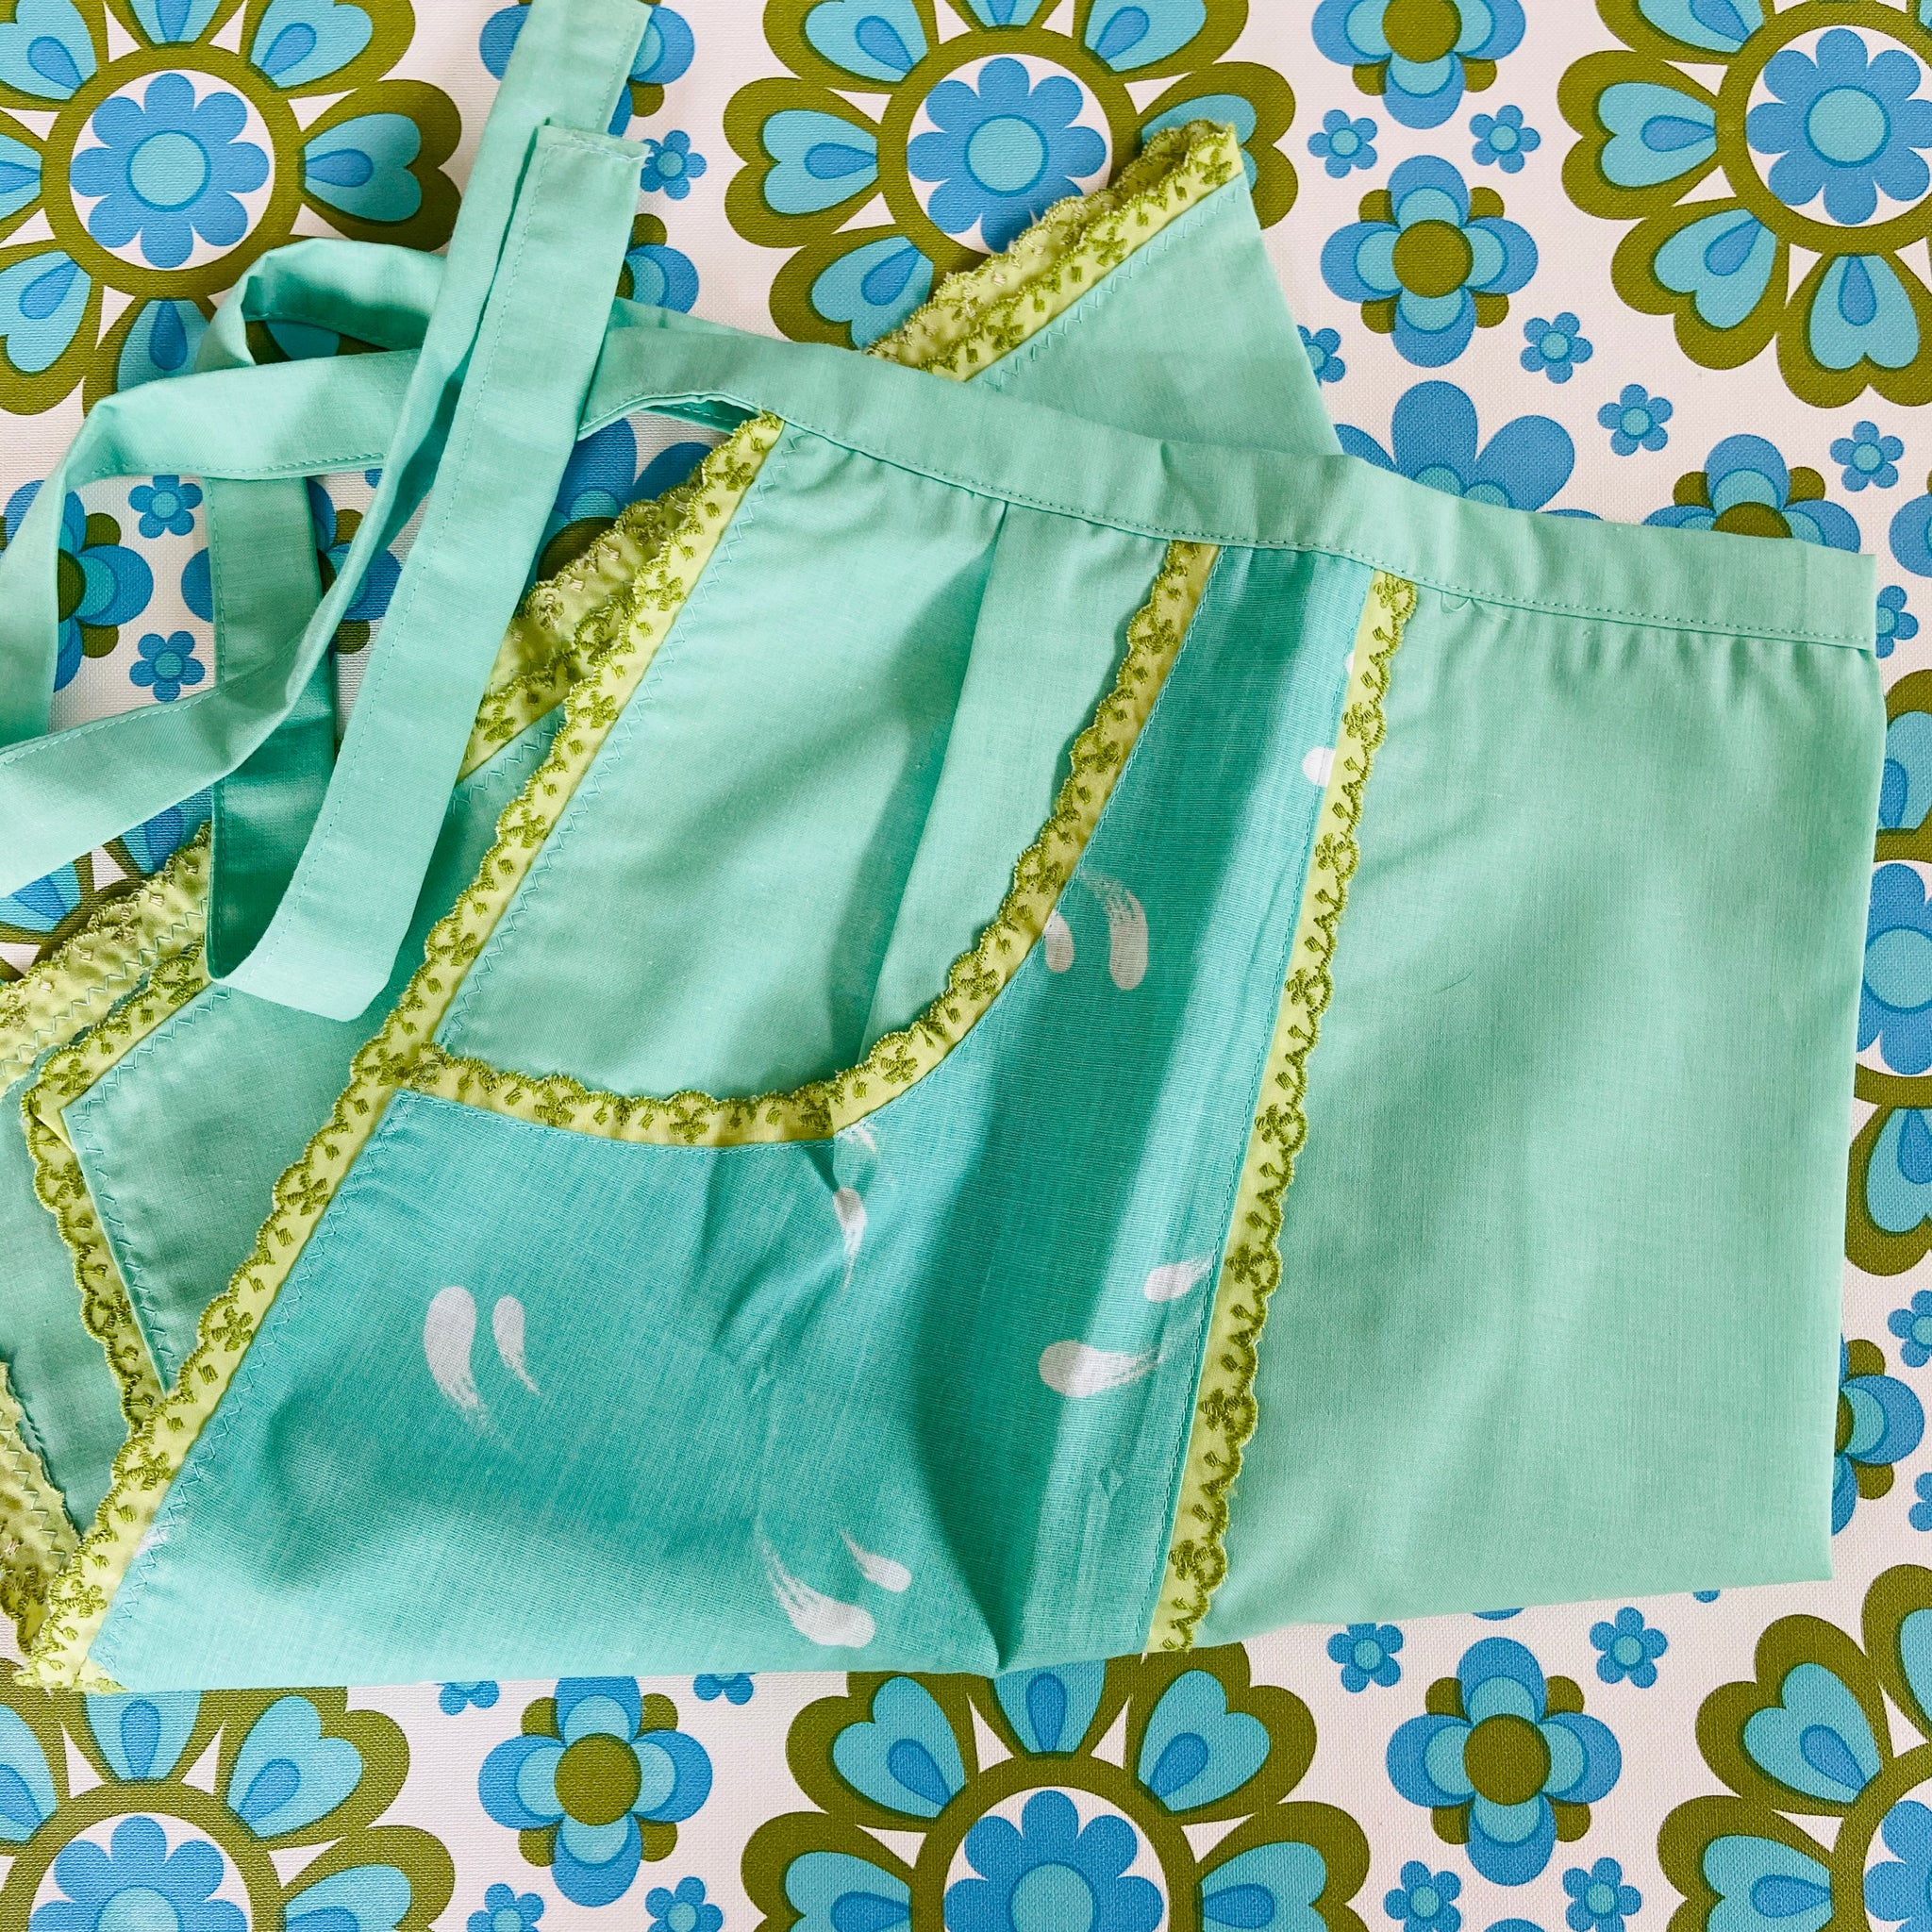 UNUSED Peppermint GREEN Apron Vintage Chic 50's FUN